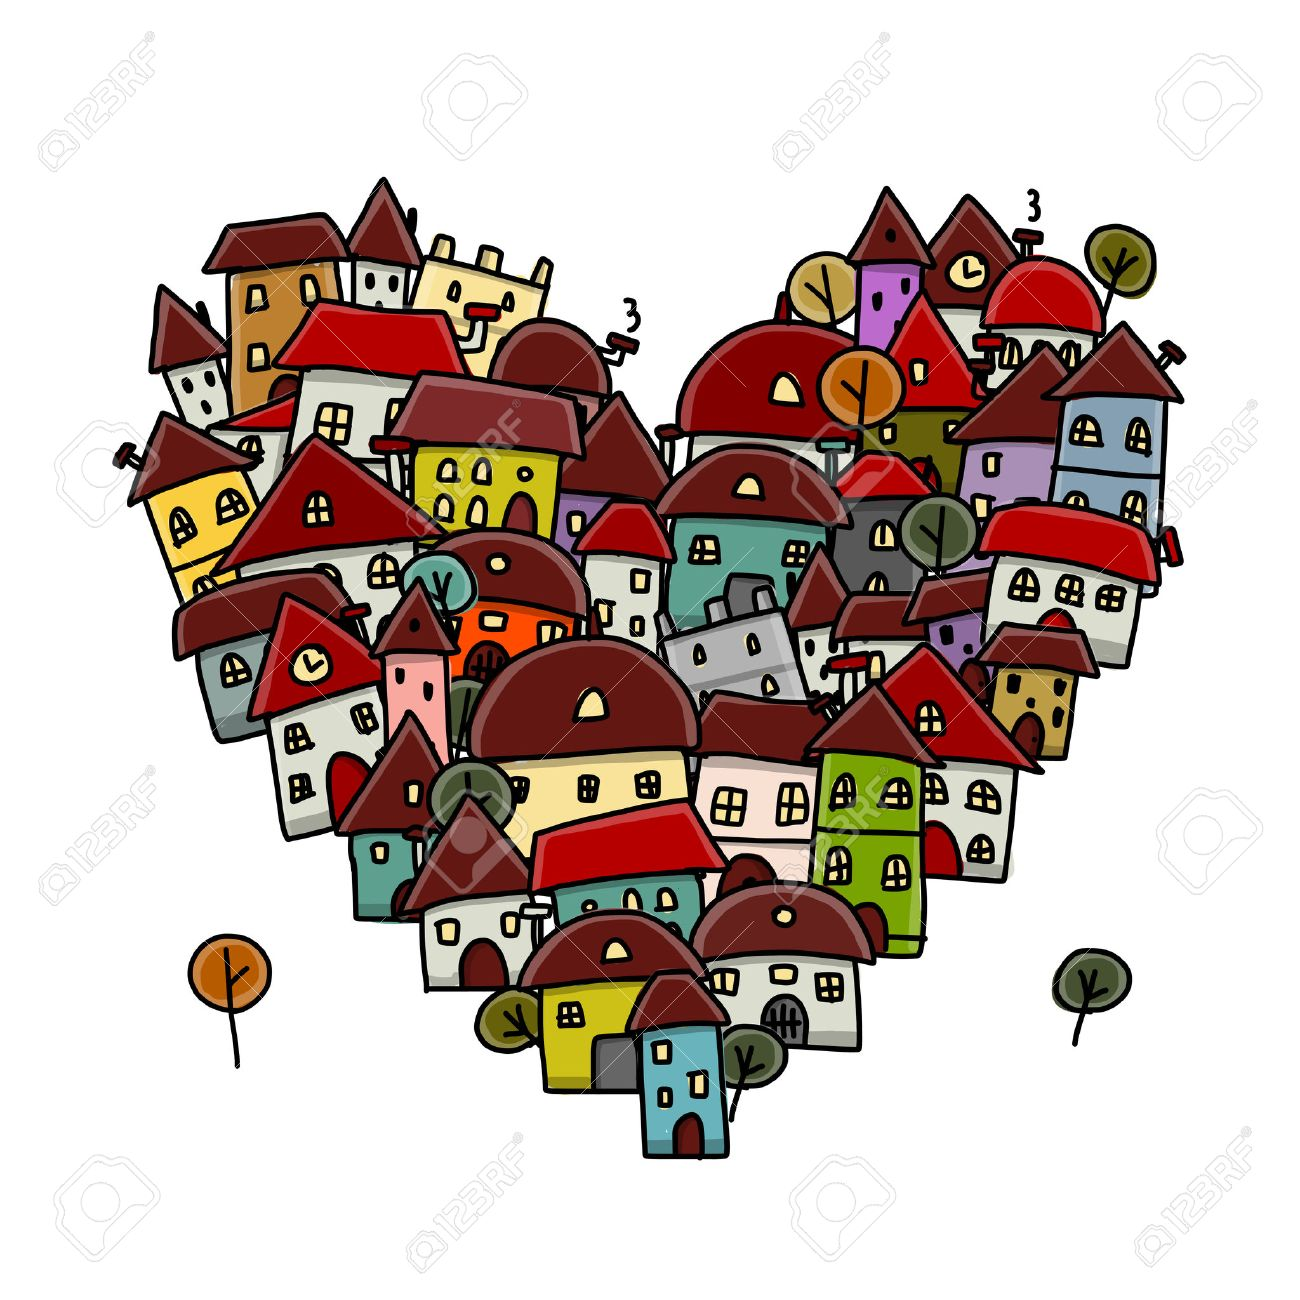 City of love, heart shape sketch for your design Stock Vector - 31488697